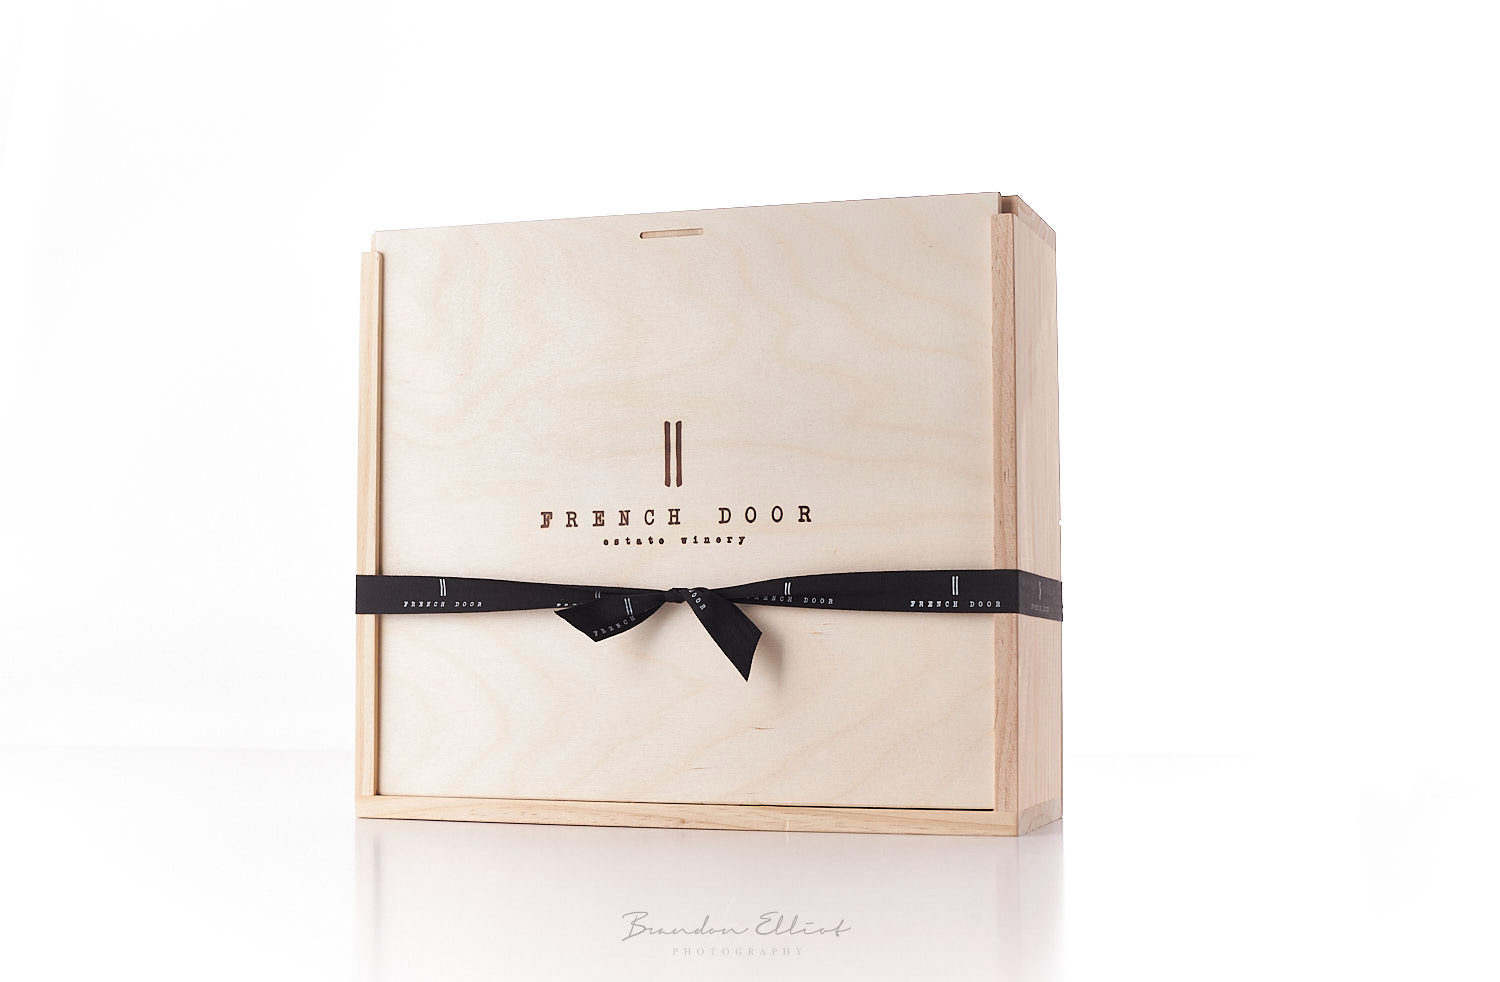 French Door Winery gift box photographed by Osoyoos Photographer Brandon Elliot